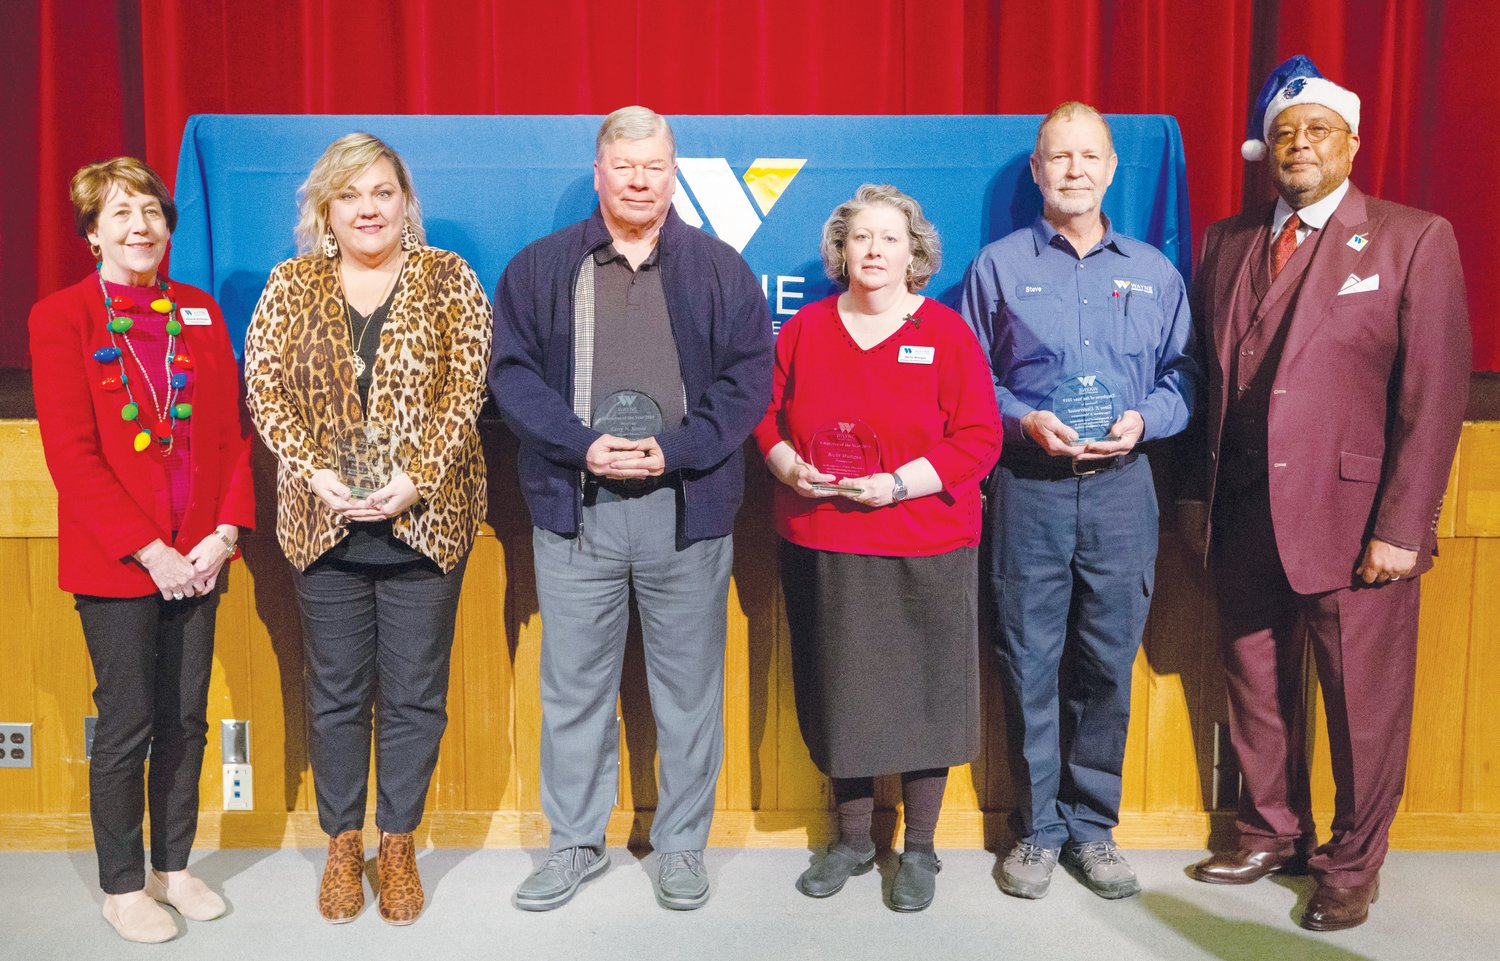 Foundation of Wayne Community College Executive Director Adrienne Northington, far left, and WCC President Thomas A. Walker Jr., far right, stand with the top employees of 2019 recently honored at the school. From left, they are Northington, Administrative Assistant Michelle Dixon - Professional Support Staff of the Year, Instructor Larry Stroud - Adjunct Faculty of the Year, Institutional Effectiveness Coordinator Becky Mulligan - Professional Employee of the Year, Maintenance Technician Steve Underwood - Operational and Maintenance Staff Employee of the Year, and Walker.